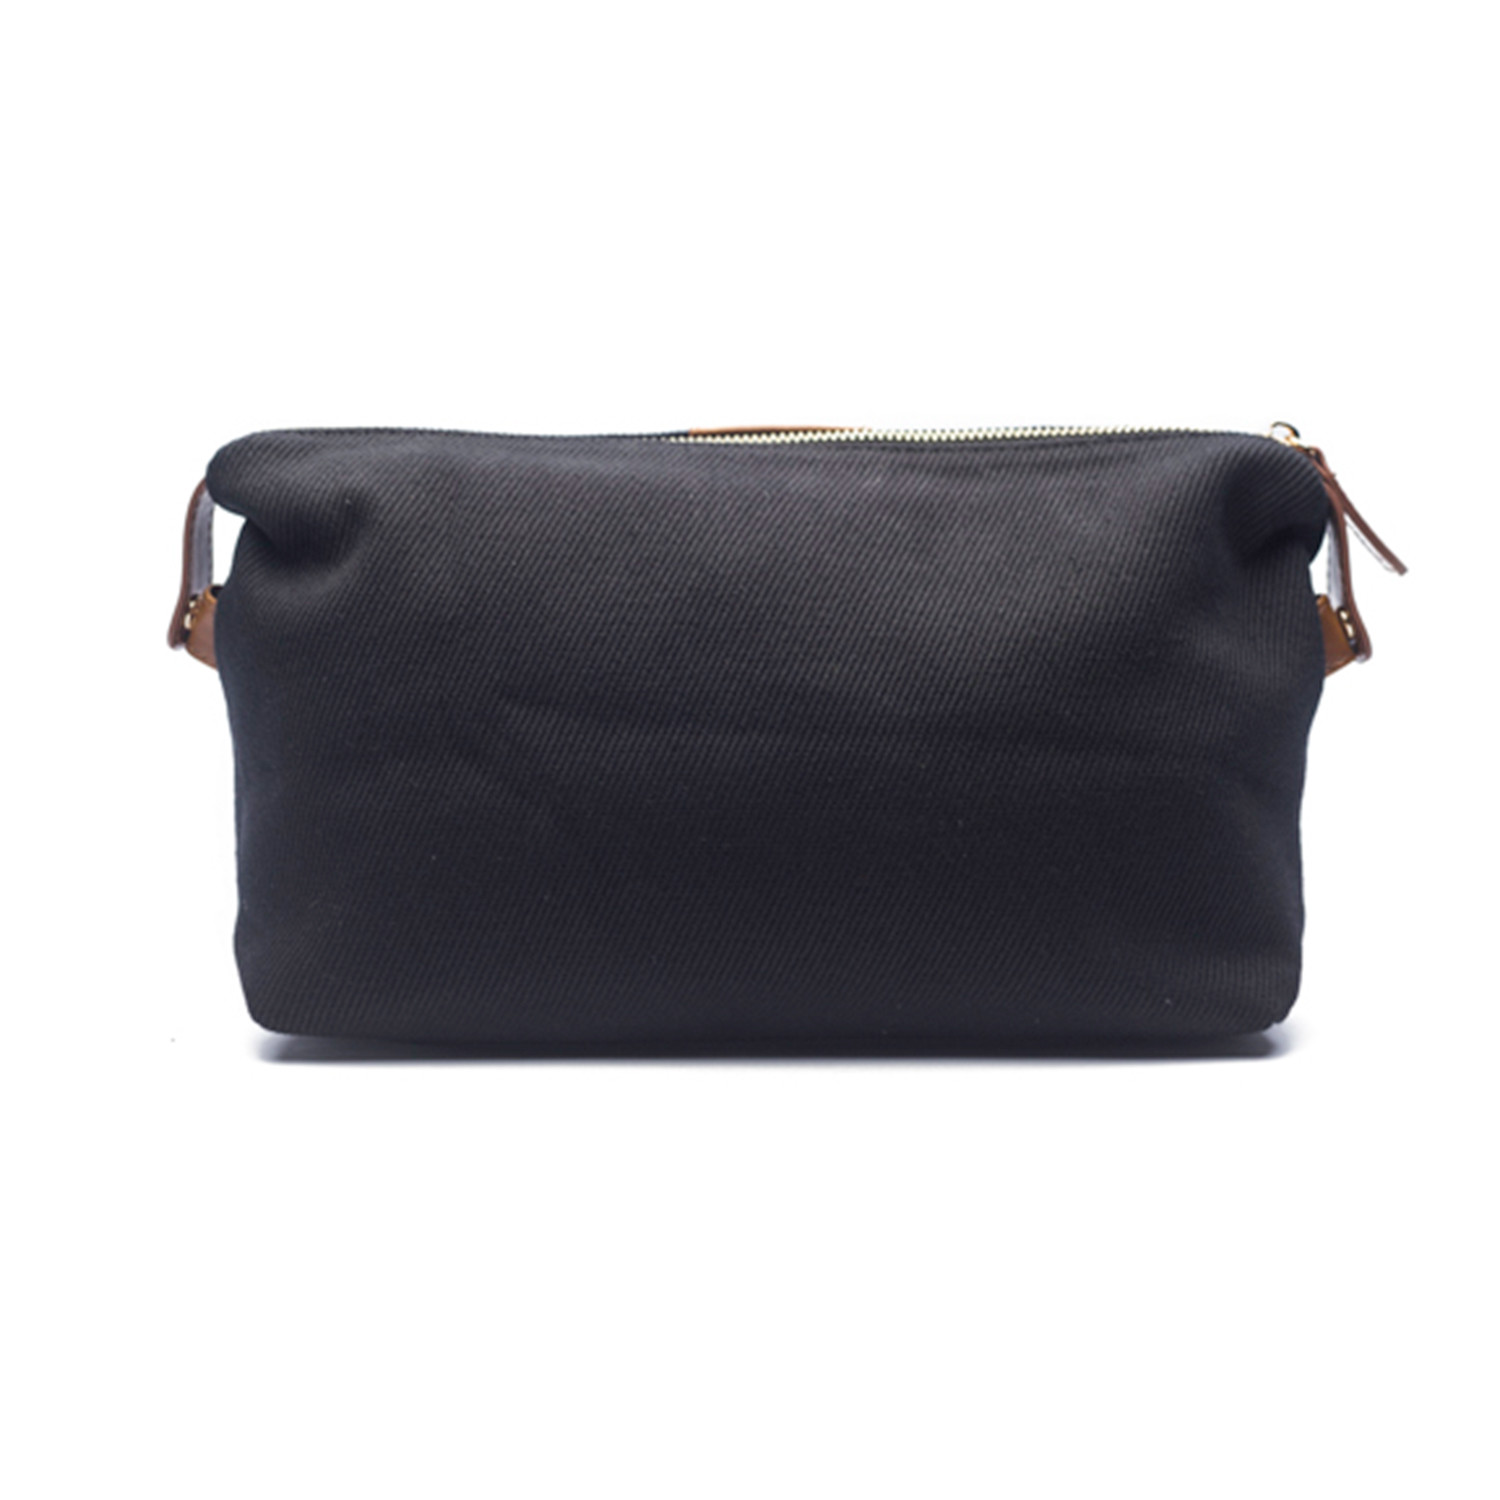 1a19a5ea1f Original Toiletry Bag (Military Green + Brown) - Brouk   Co - Touch ...